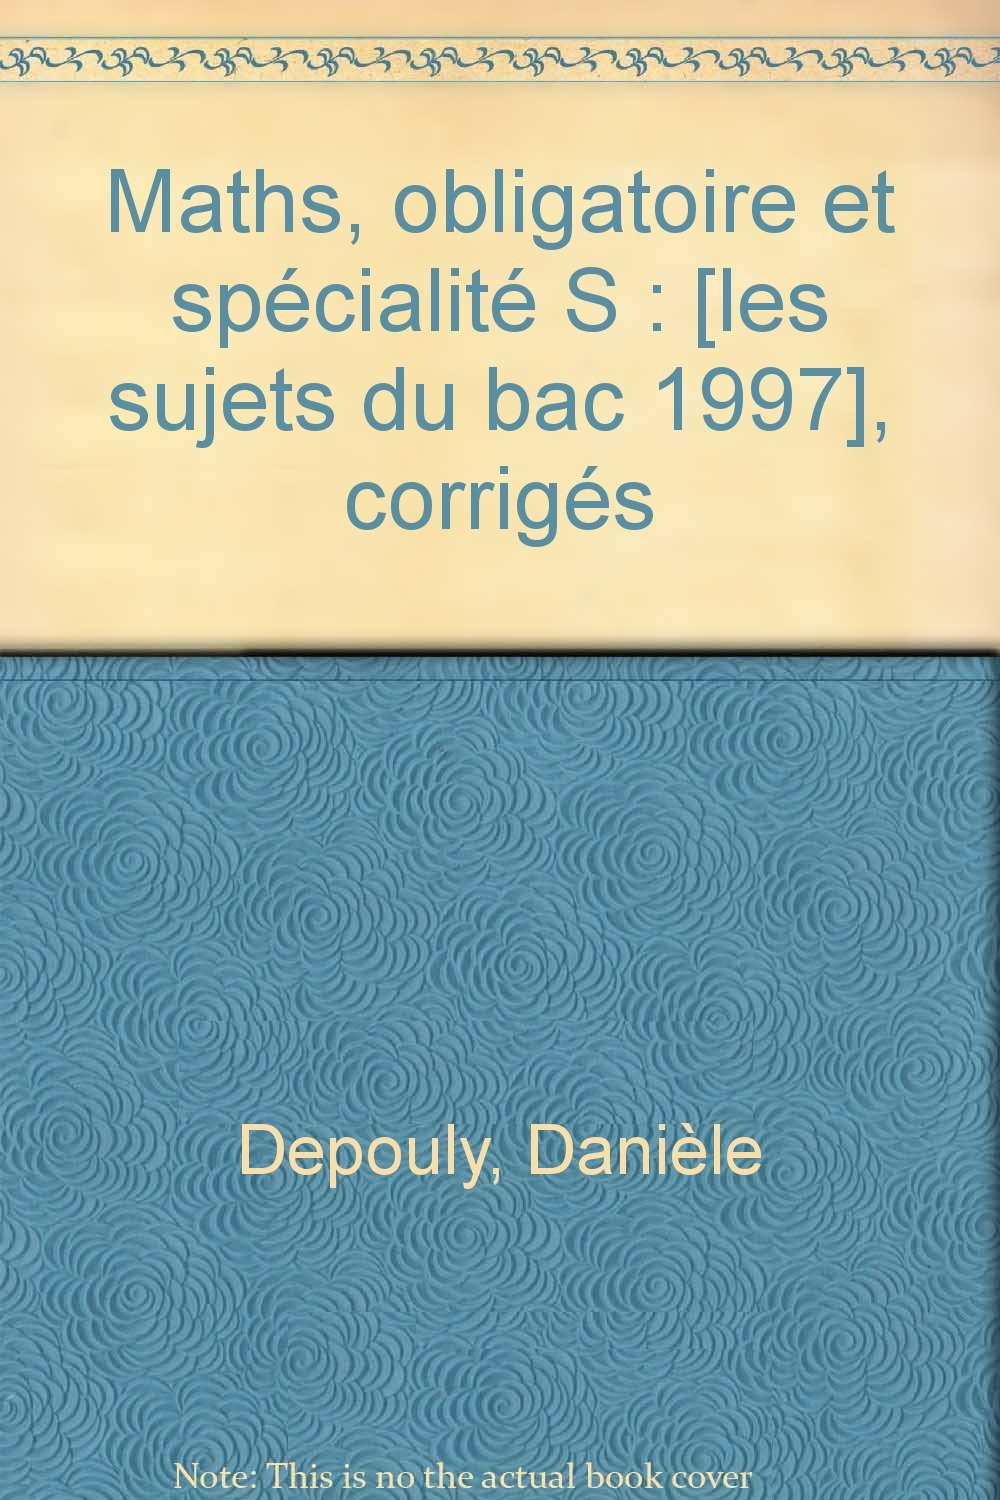 Sujets bac no12 maths t.s obligatoire + specialitecorriges (French) Paperback